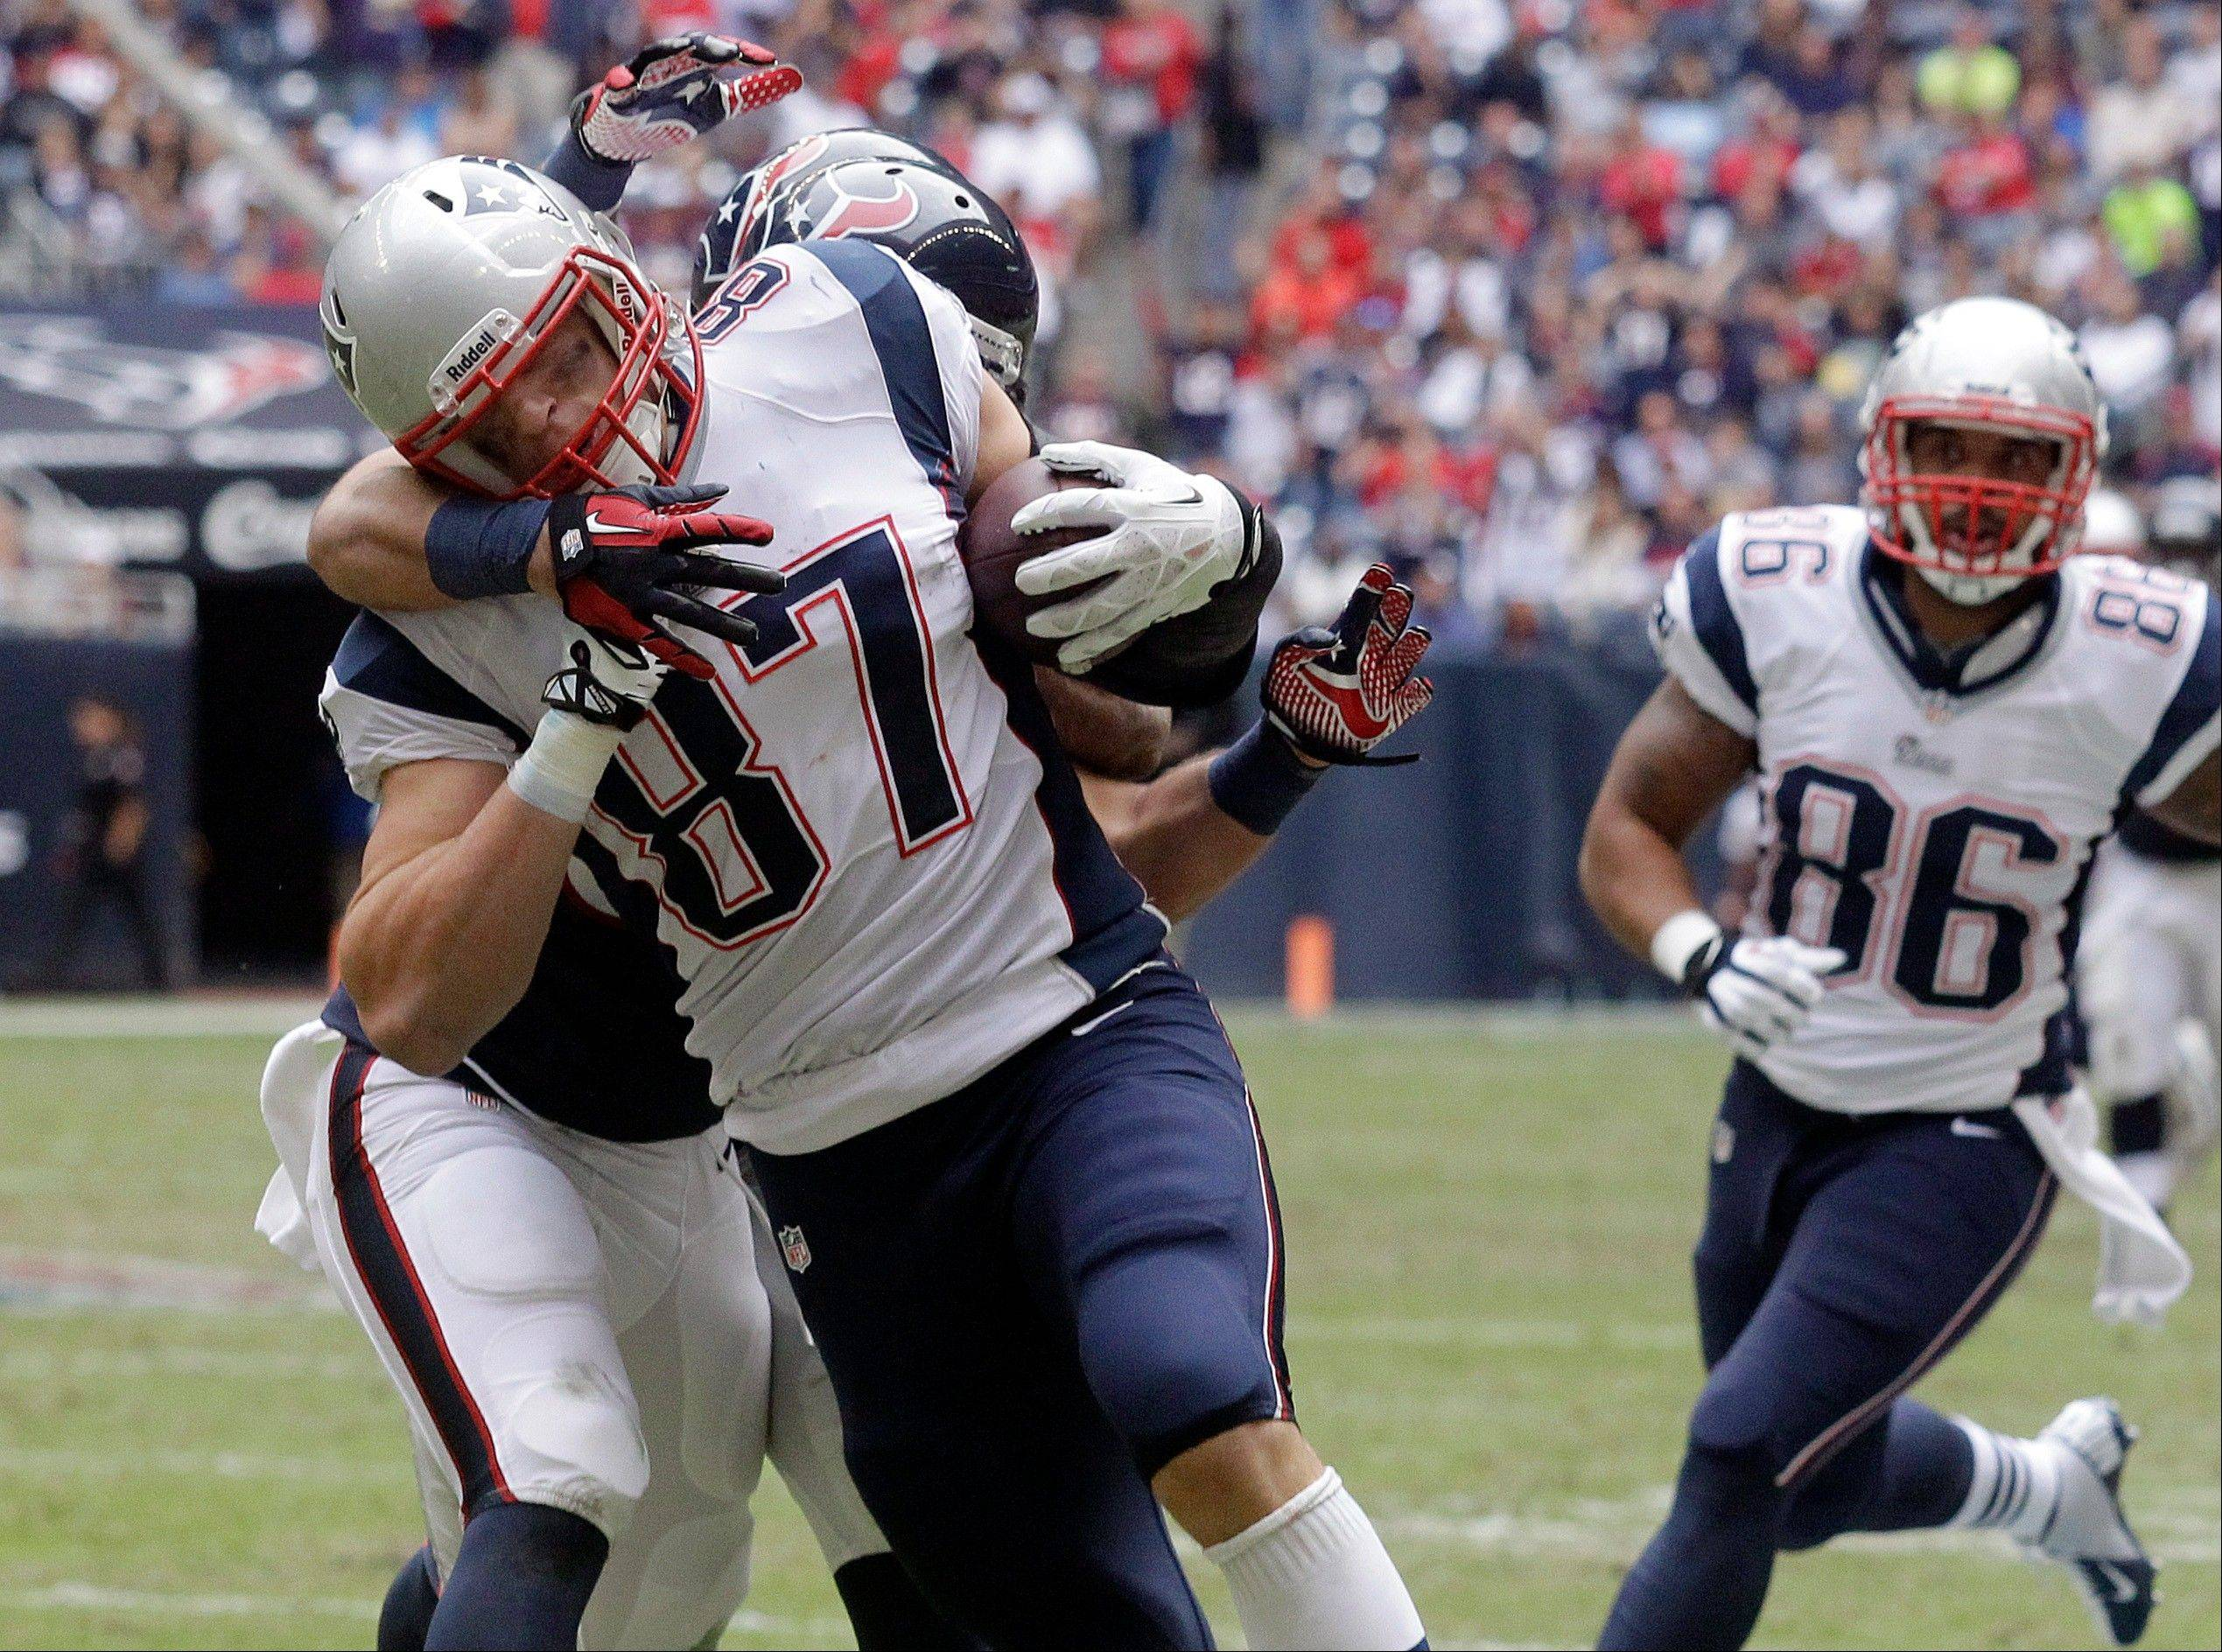 New England Patriots� Rob Gronkowski (87) is hit by Houston Texans� Shiloh Keo, left, after making a catch during the third quarter in Houston.